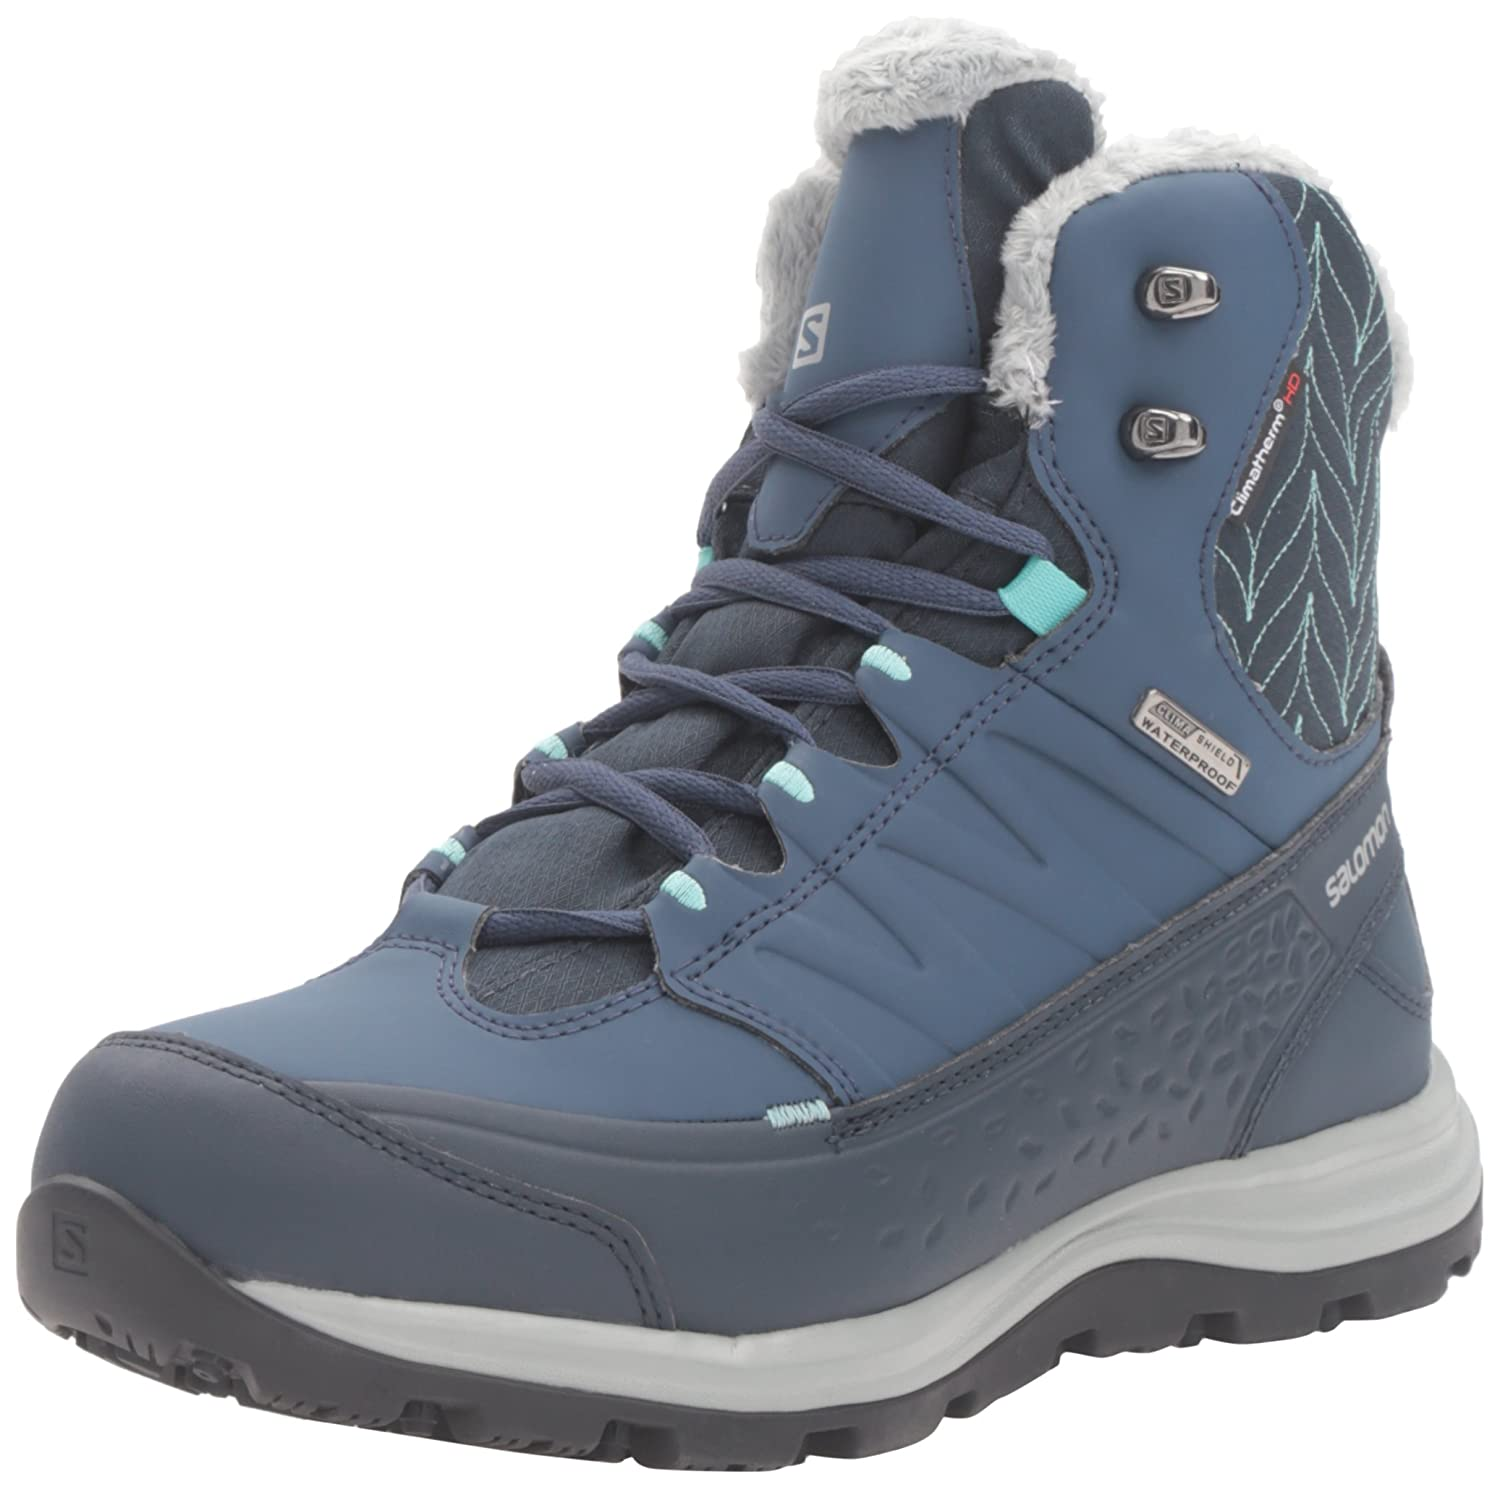 Salomon Women's Kaina Mid CS Waterproof 2-W Snow Boot B017SRQ718 8 D US|Deep Blue/Slateblue/Bubble Blue